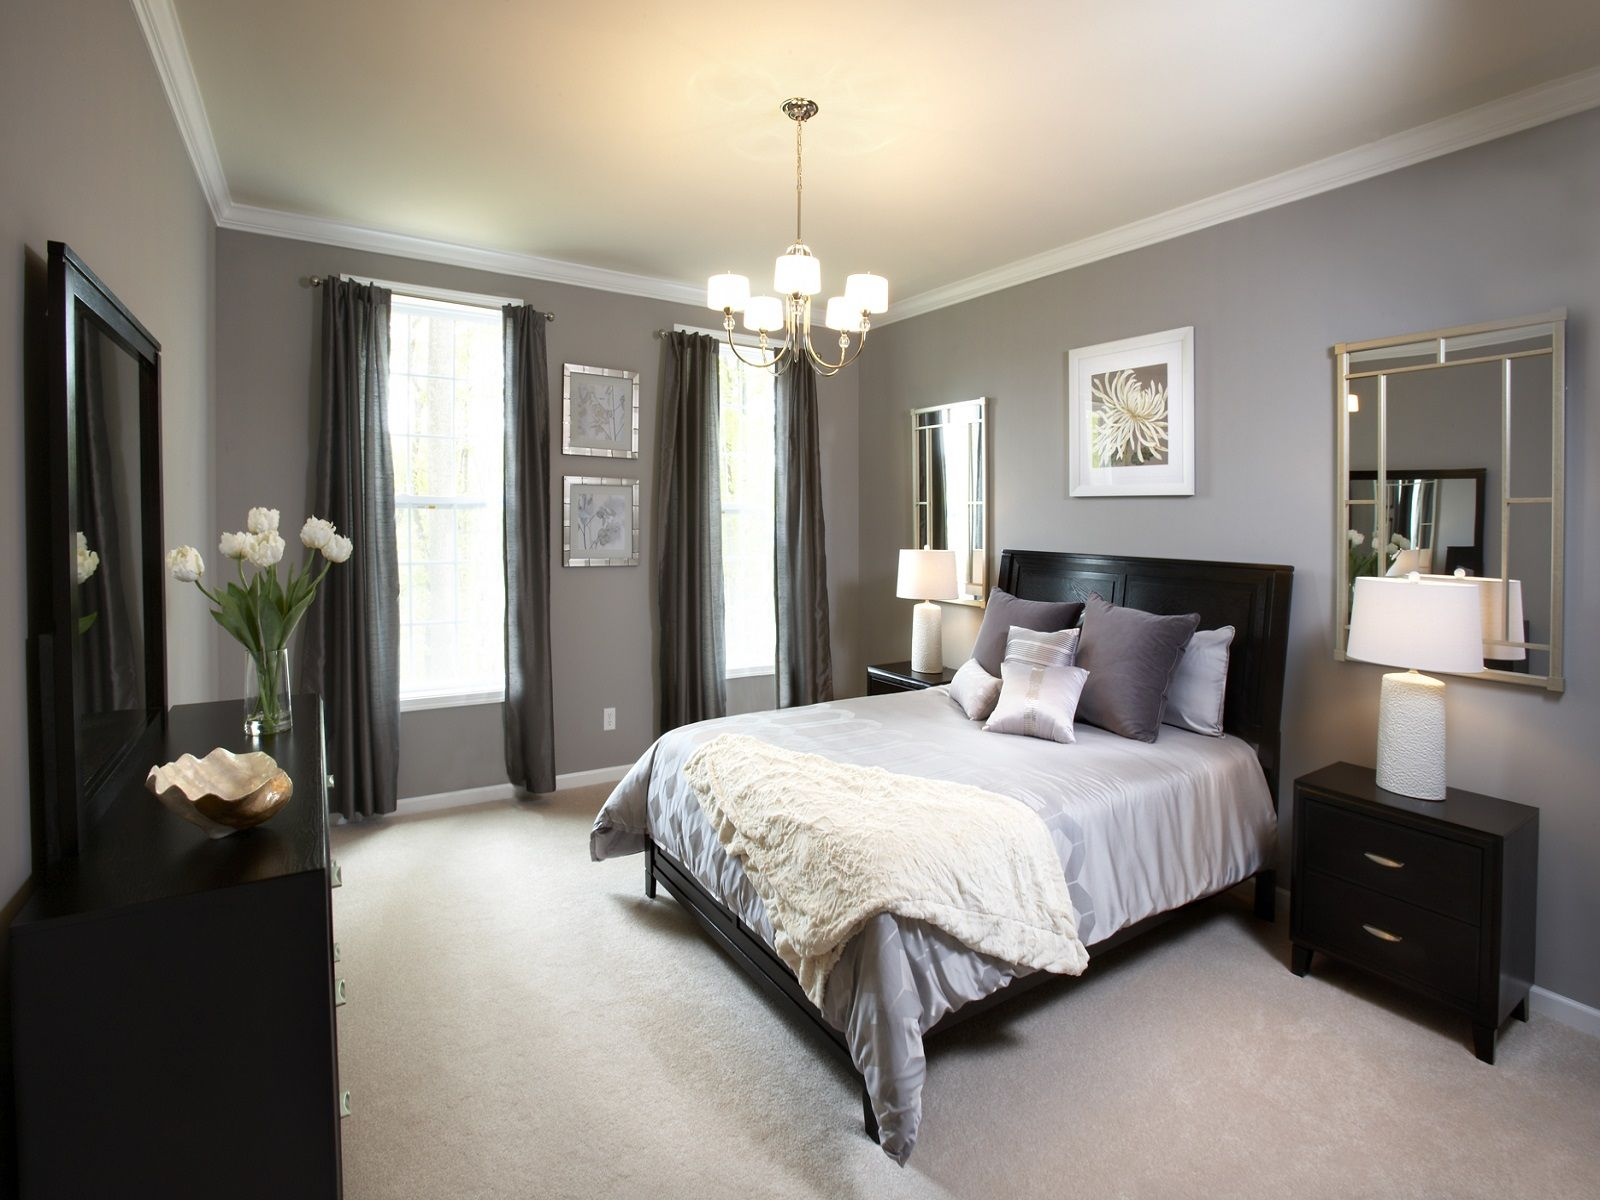 Bedroom color ideas grey - 17 Best Ideas About Grey Bedroom Furniture On Pinterest Bedroom Furniture Grey Painted Furniture And Dressers